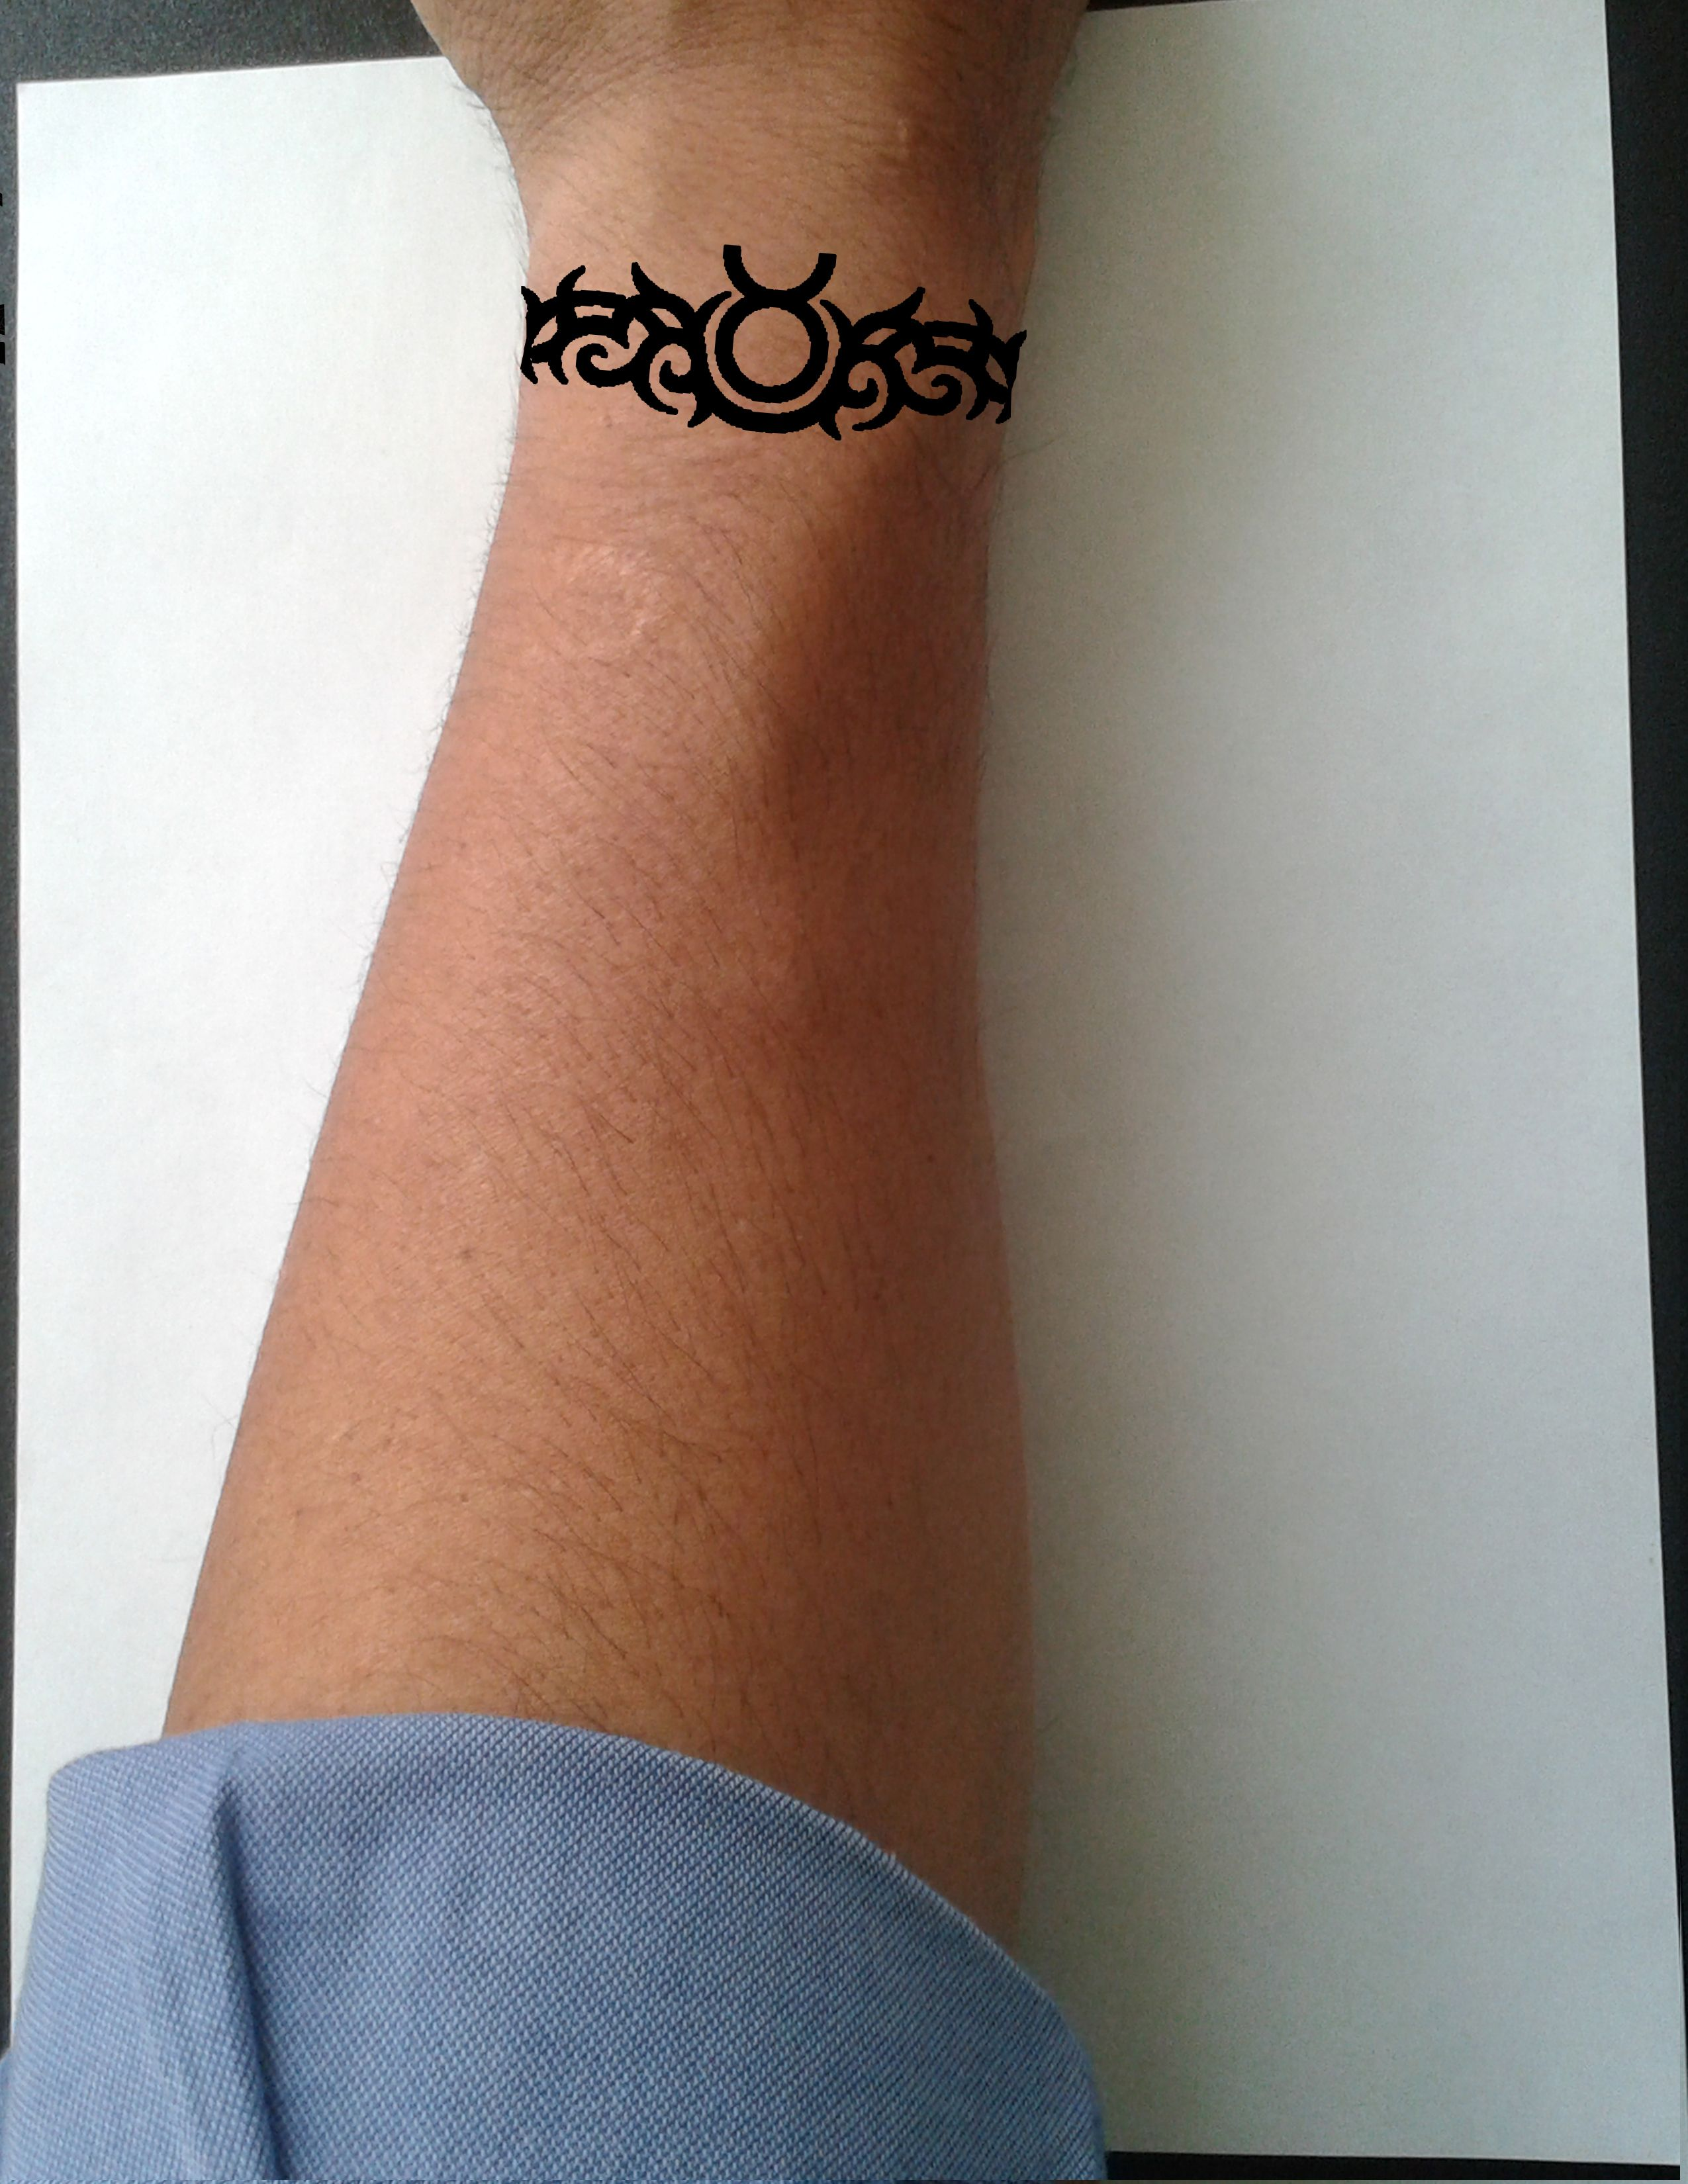 Front Wrist Tattoos : front, wrist, tattoos, Wrist, Tattoo, Front, Tattoos,